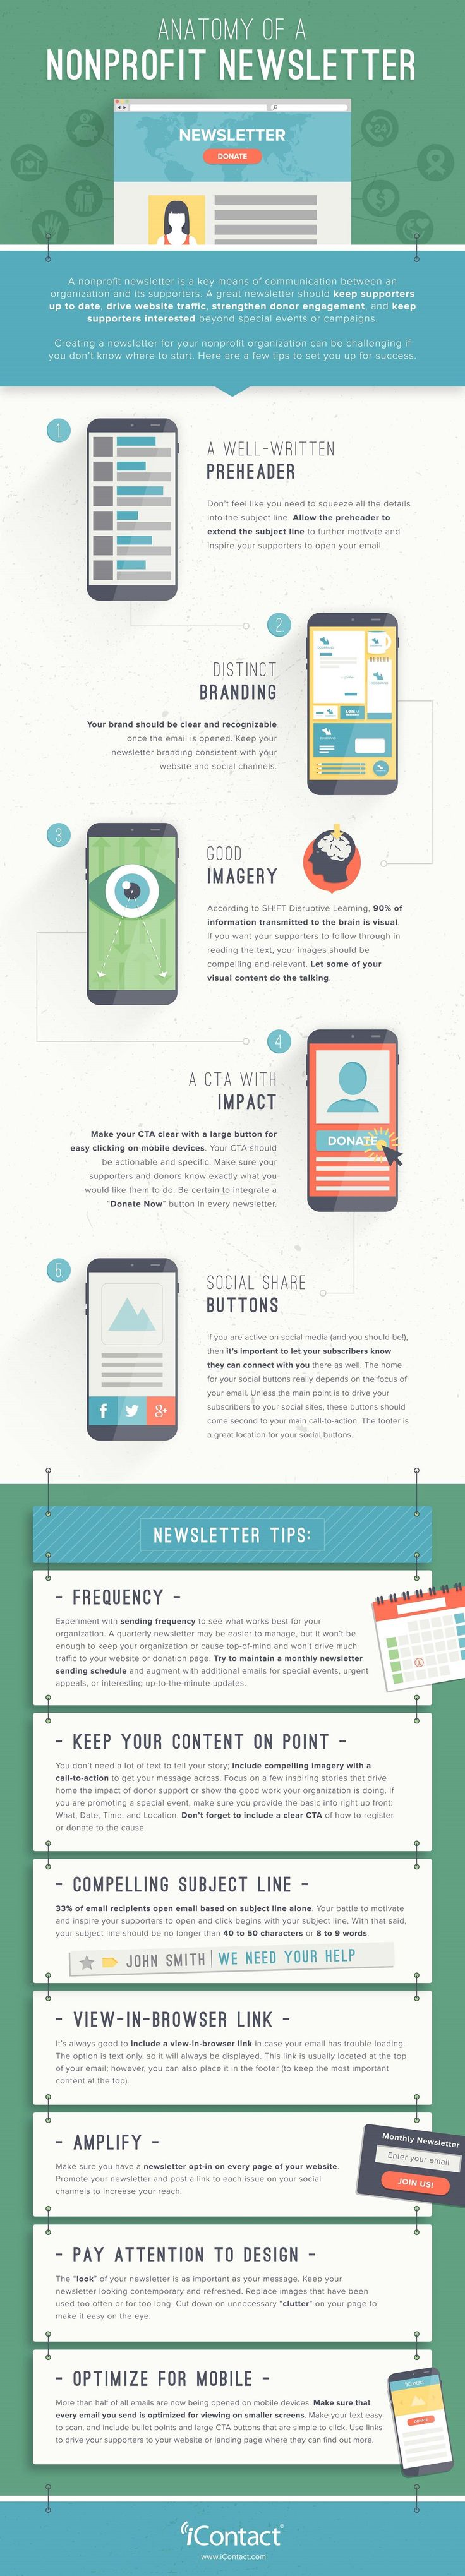 928 best marketing infographics images on pinterest anatomy of a nonprofit newsletter infographic fandeluxe Gallery